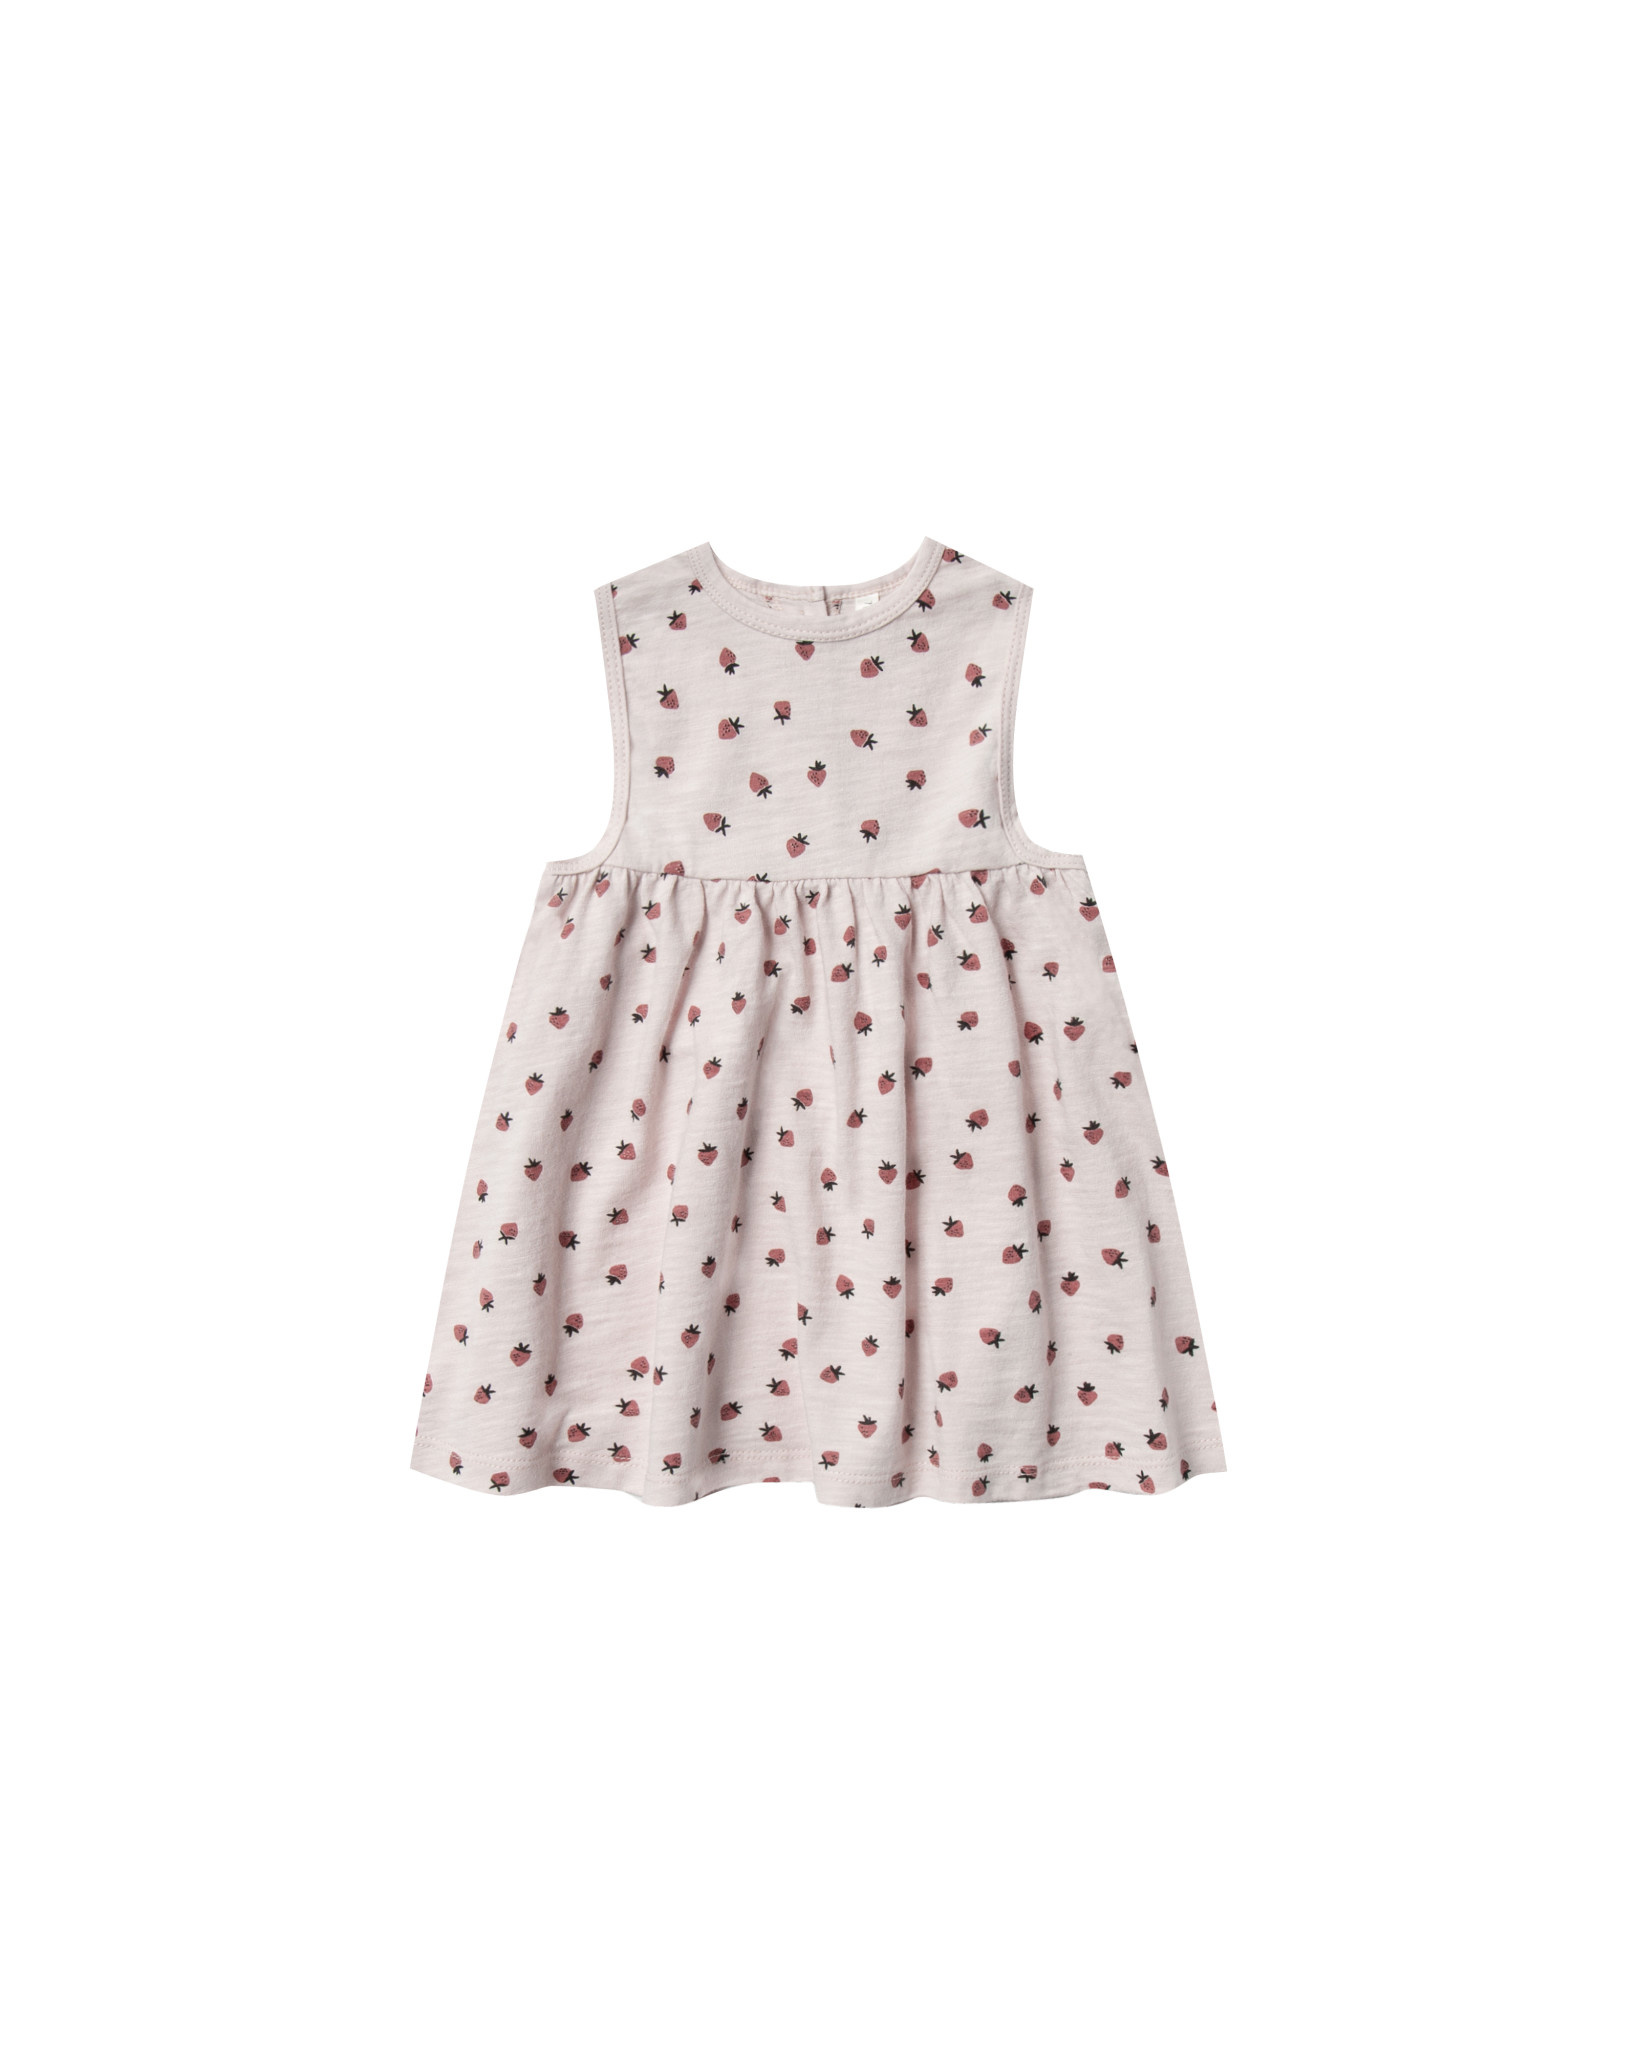 Rylee + Cru Rylee + Cru Strawberry Layla Dress